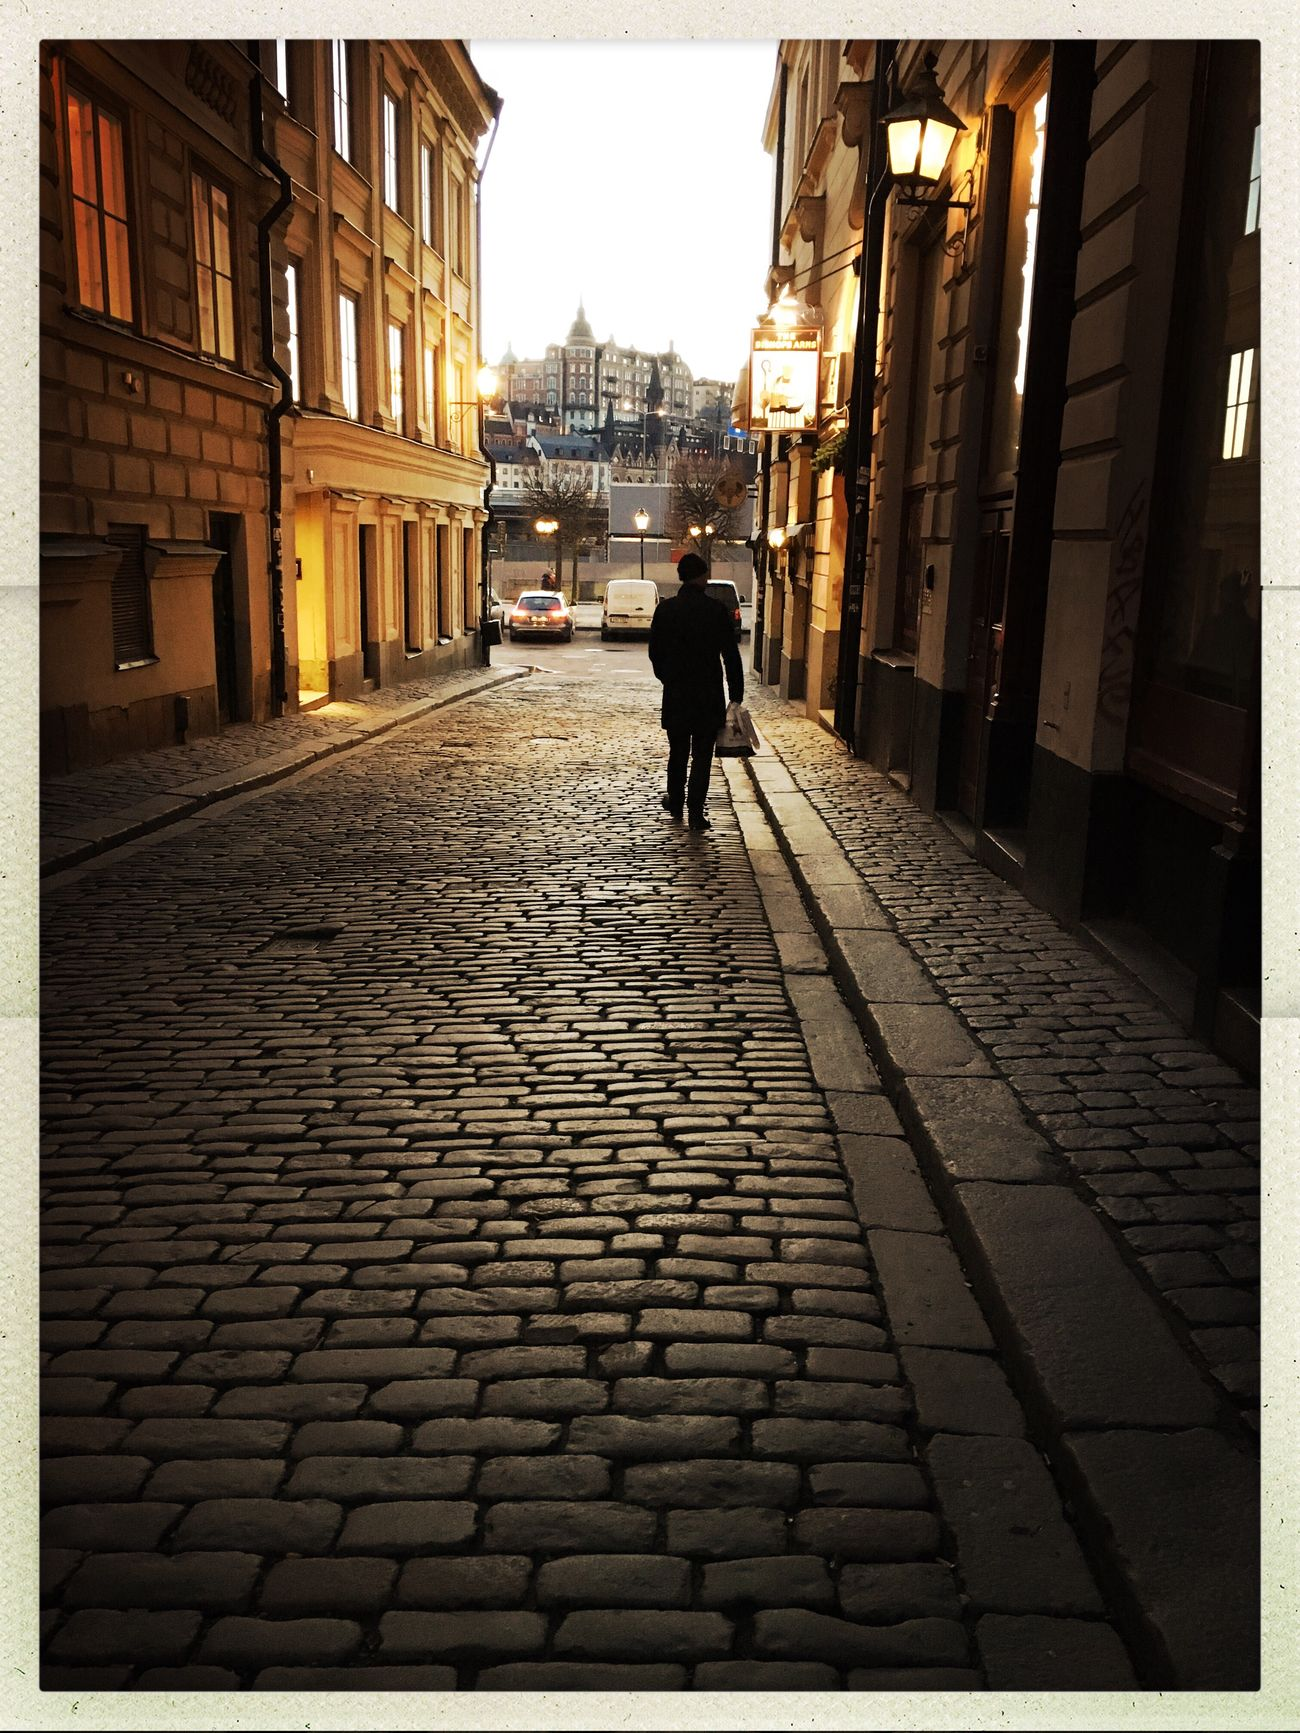 My Own Style Of Beauty ShotoniPhone6s Visual Witness Eyeem In Stockholm Outdoors Shootermag Hipstography Finding New Frontiers Man Architecture Lines EyeEm Traveling Walking